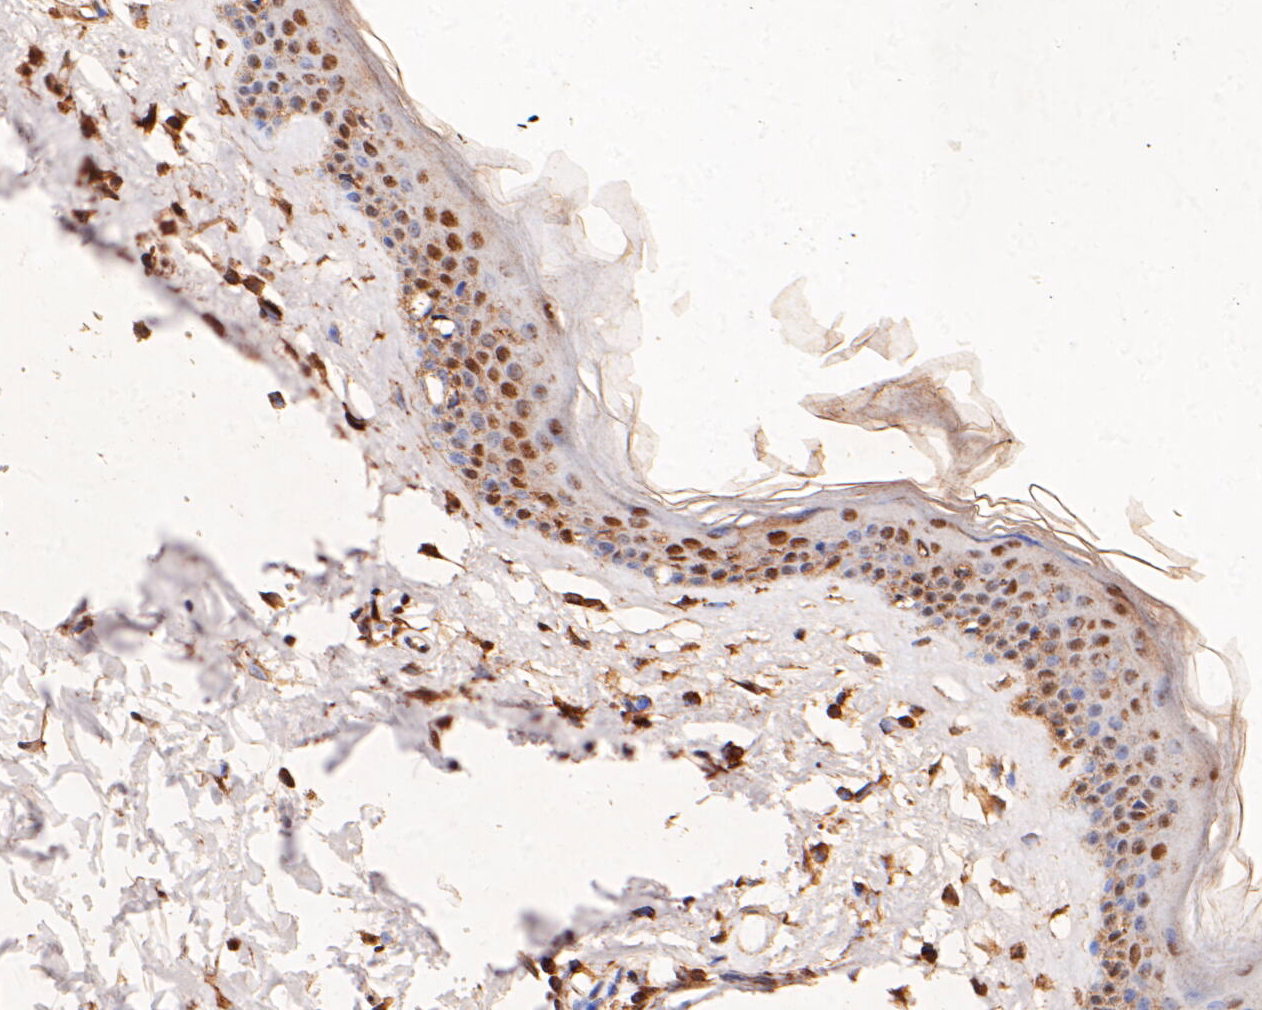 Immunohistochemical analysis of paraffin-embedded human skin tissue using anti-ERK2 antibody. The section was pre-treated using heat mediated antigen retrieval with sodium citrate buffer (pH 6.0) for 20 minutes. The tissues were blocked in 5% BSA for 30 minutes at room temperature, washed with ddH2O and PBS, and then probed with the primary antibody (EM1901-54, 1/100) for 30 minutes at room temperature. The detection was performed using an HRP conjugated compact polymer system. DAB was used as the chromogen. Tissues were counterstained with hematoxylin and mounted with DPX.